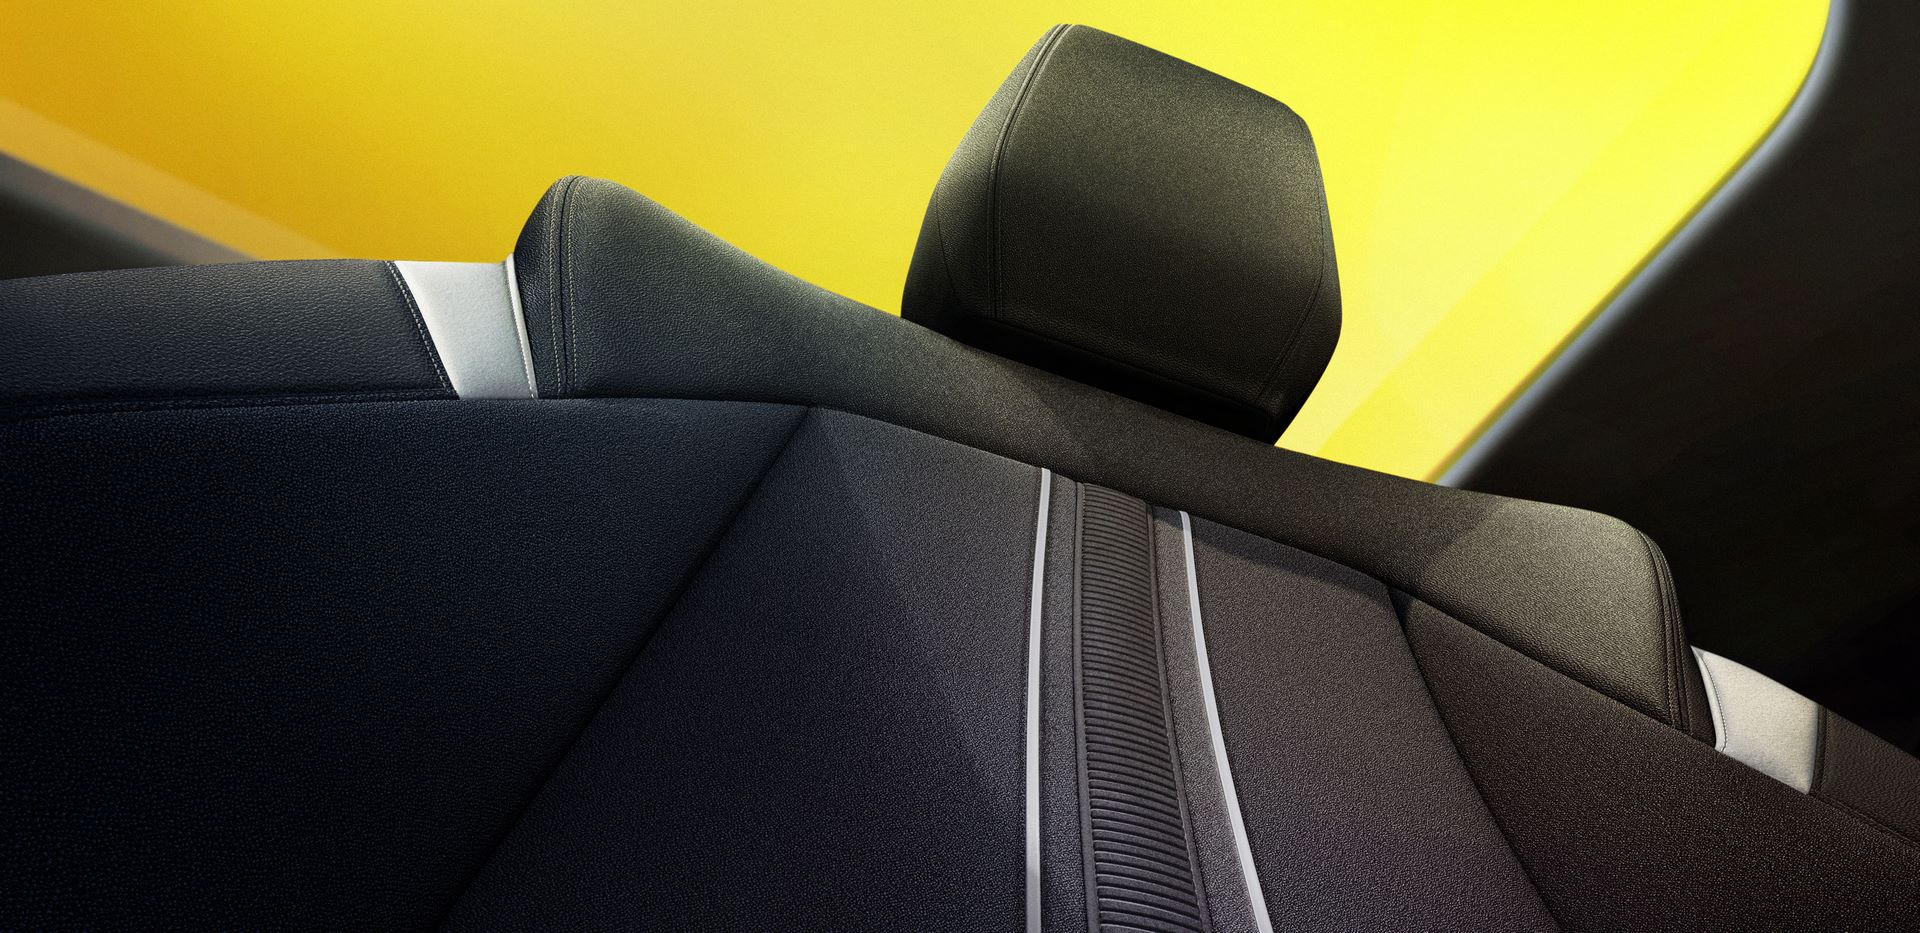 Opel-Astra-Teasers-4